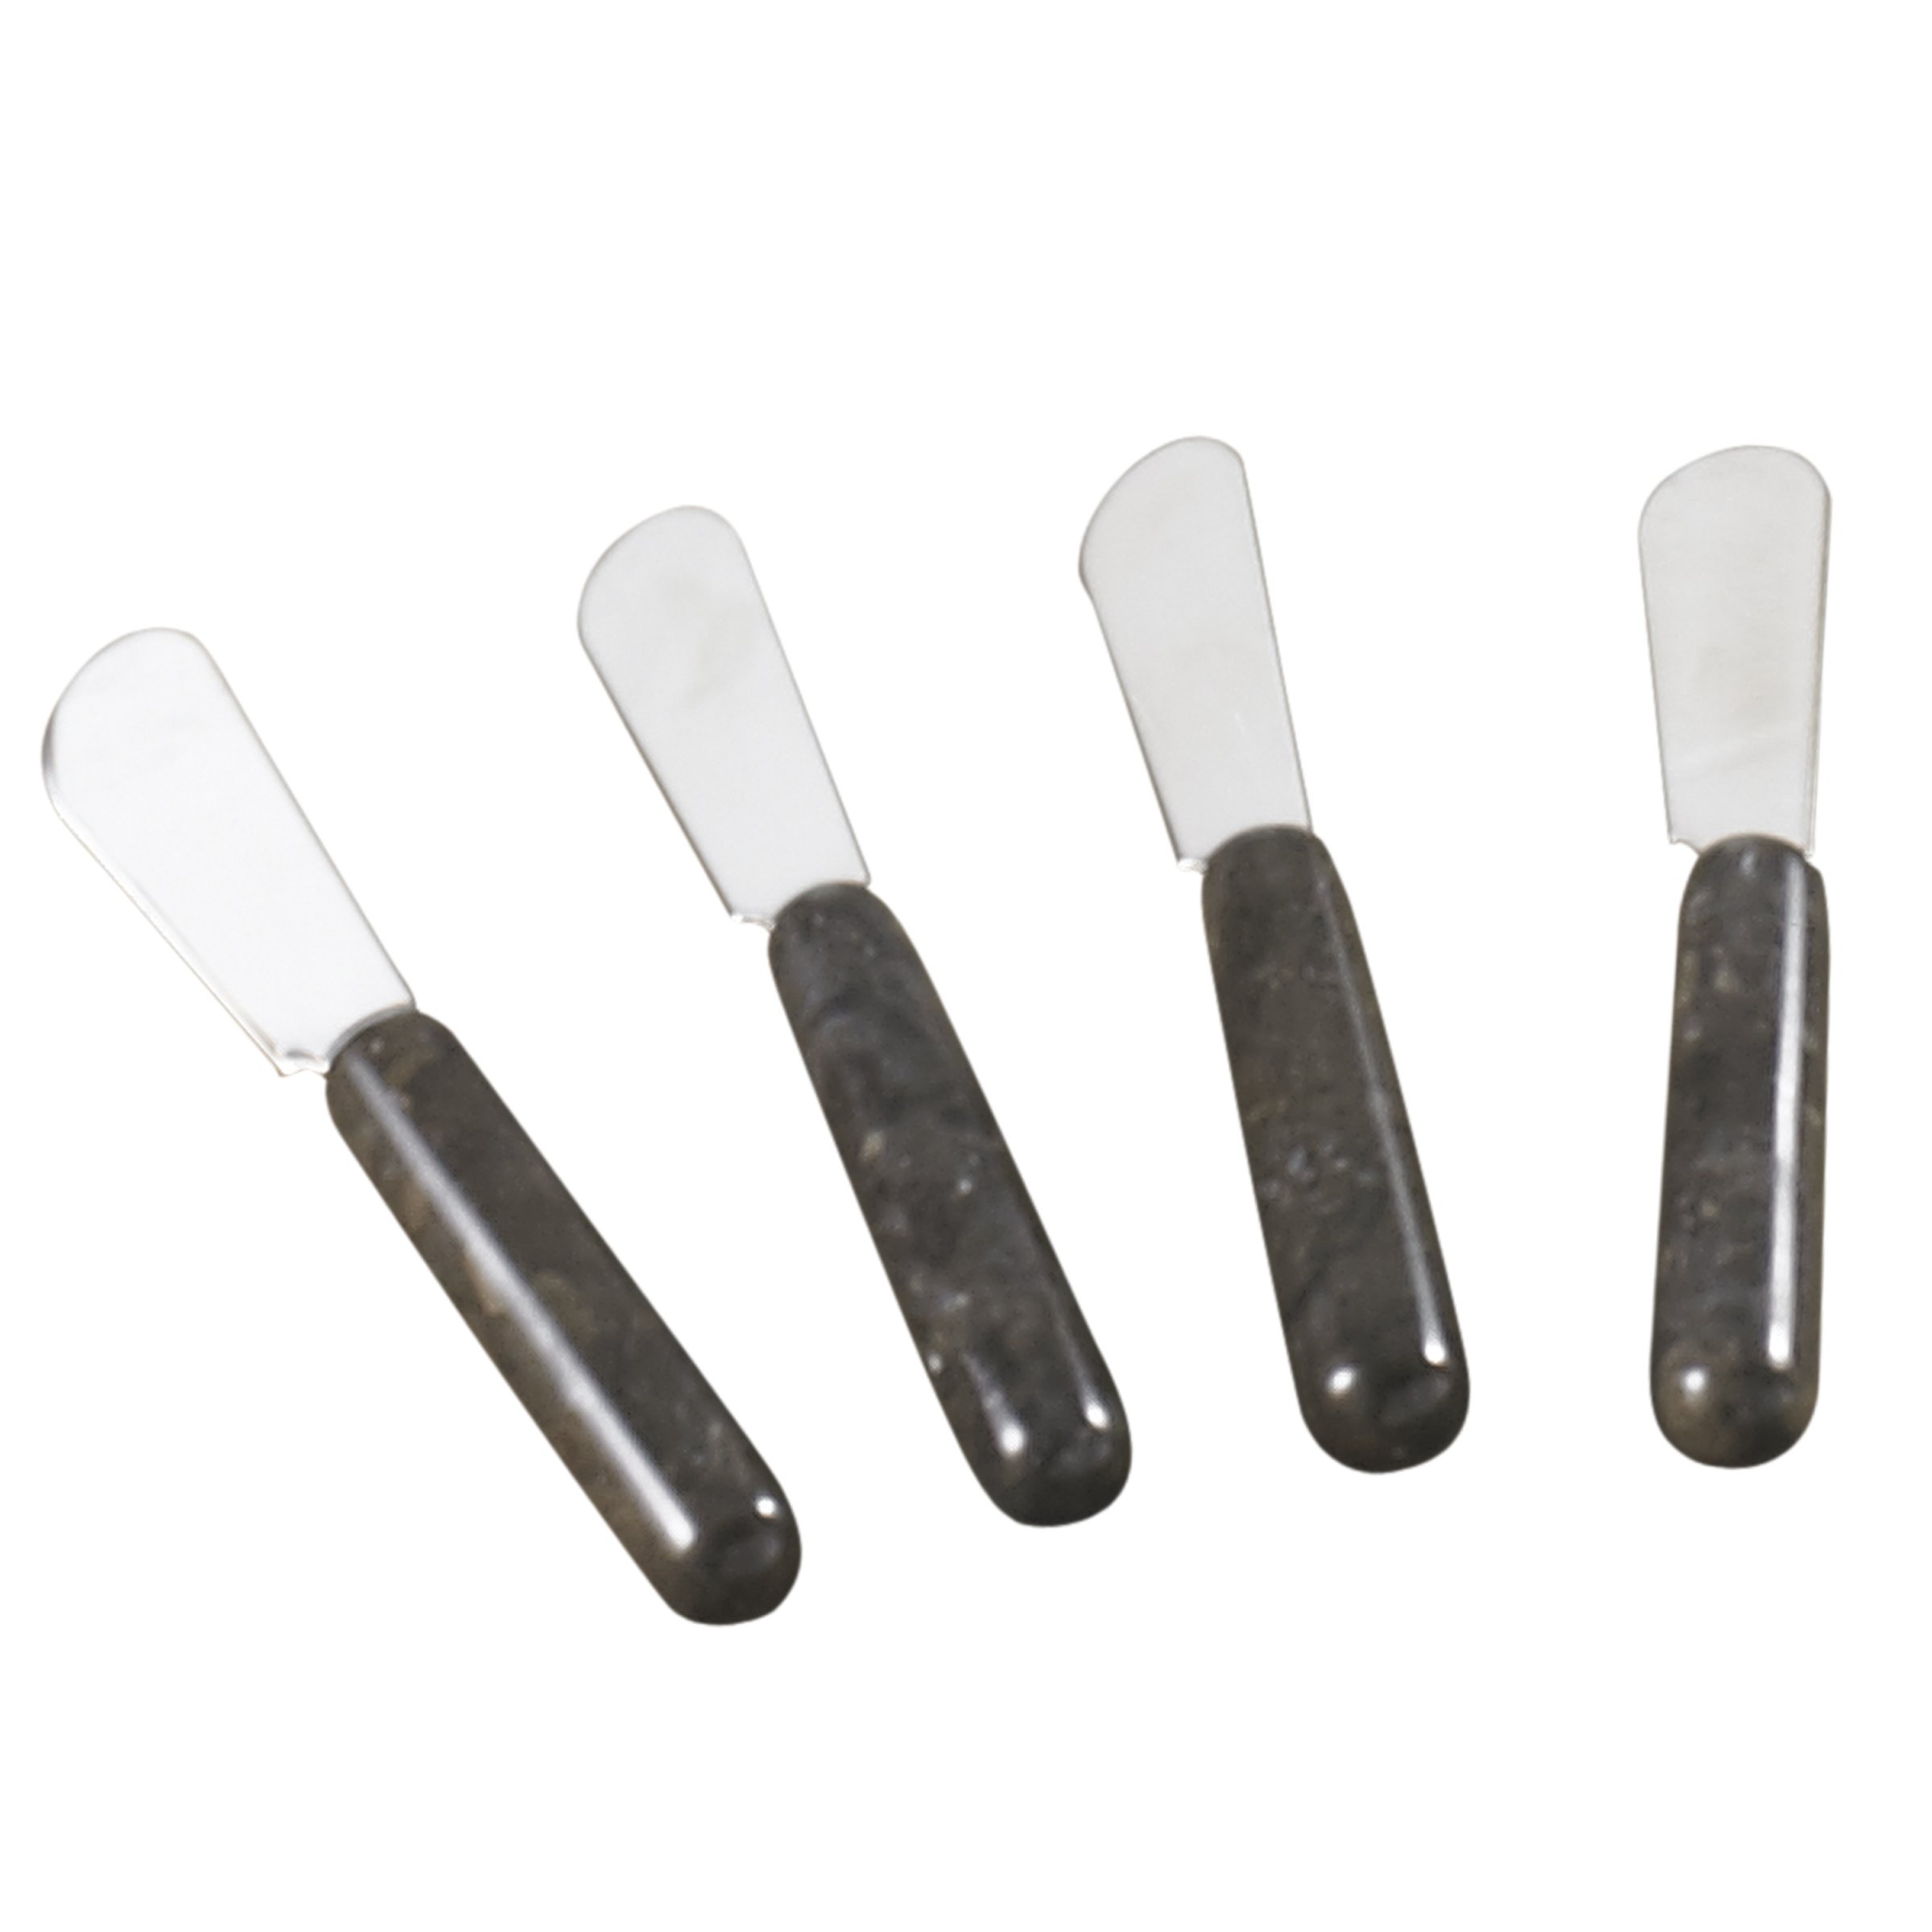 Creative Home Natural Charcoal Marble Cheese Spreaders, Butter Spreaders Set, Set of 4